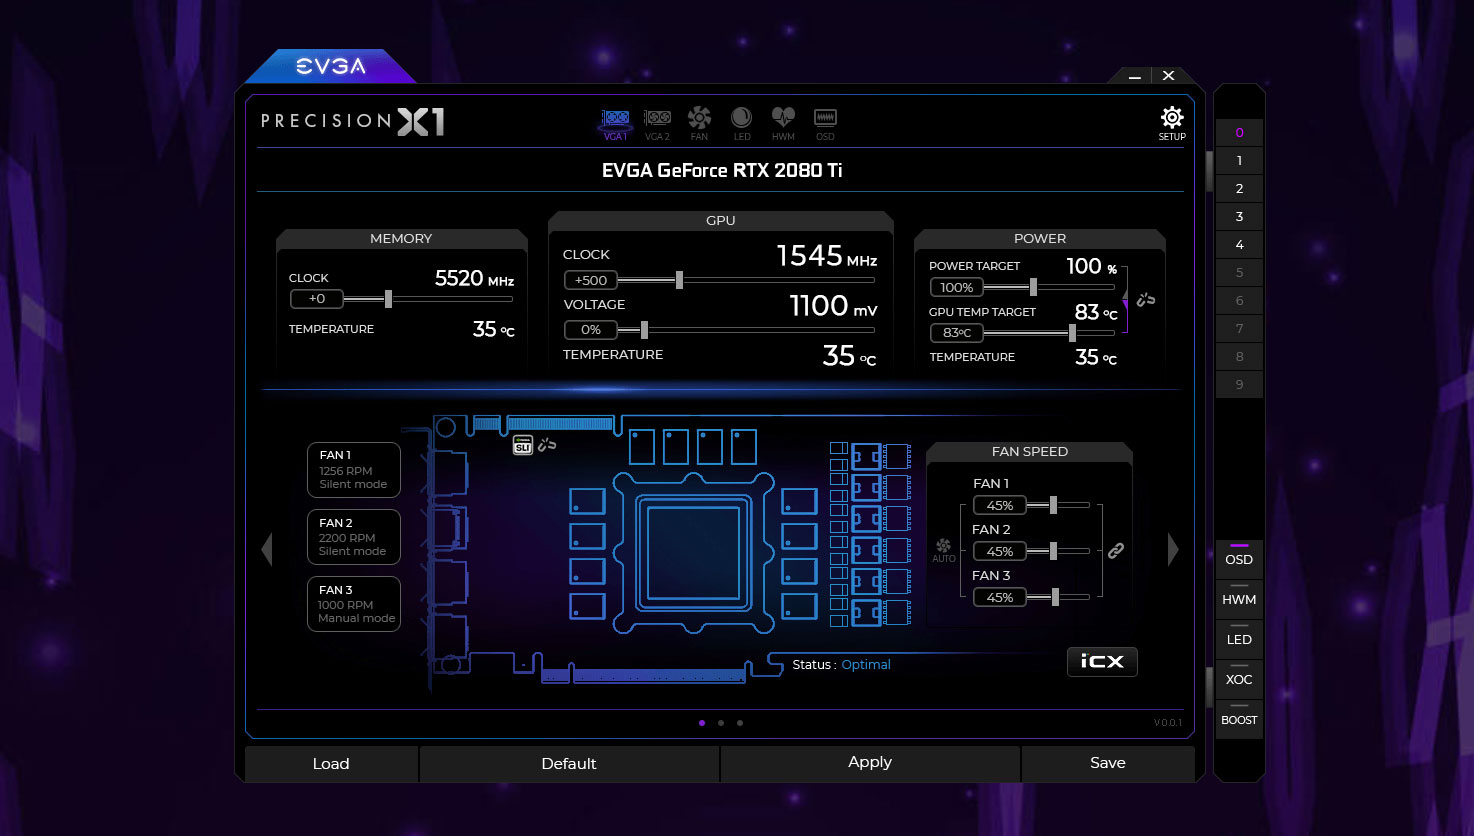 EVGA rolls out revamped Precision X1 overclocking software